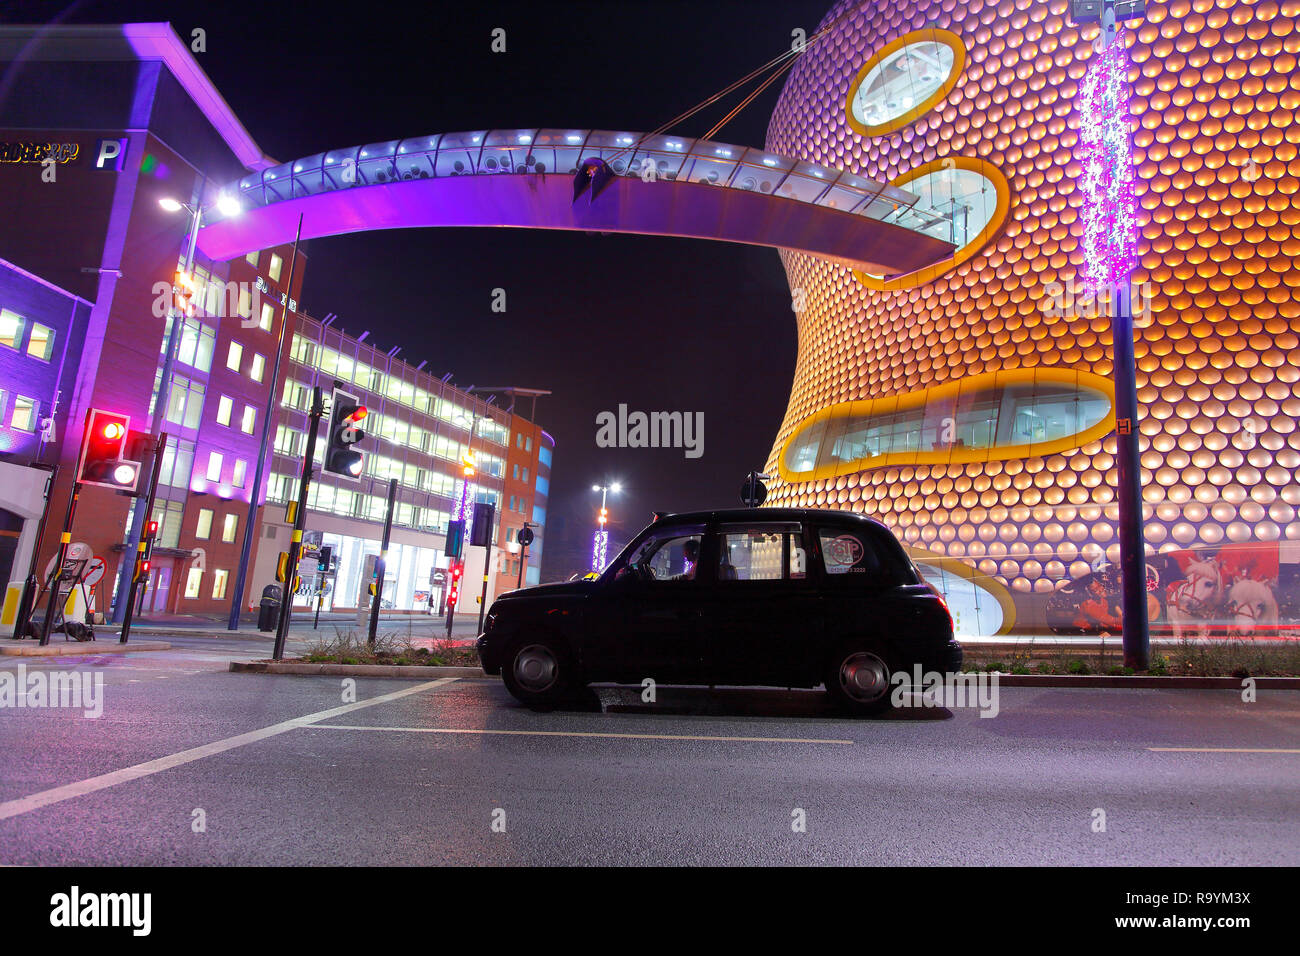 A Black Hackney Carriage waiting at traffic lights outside Selfridges in Birmingham City Centre. - Stock Image